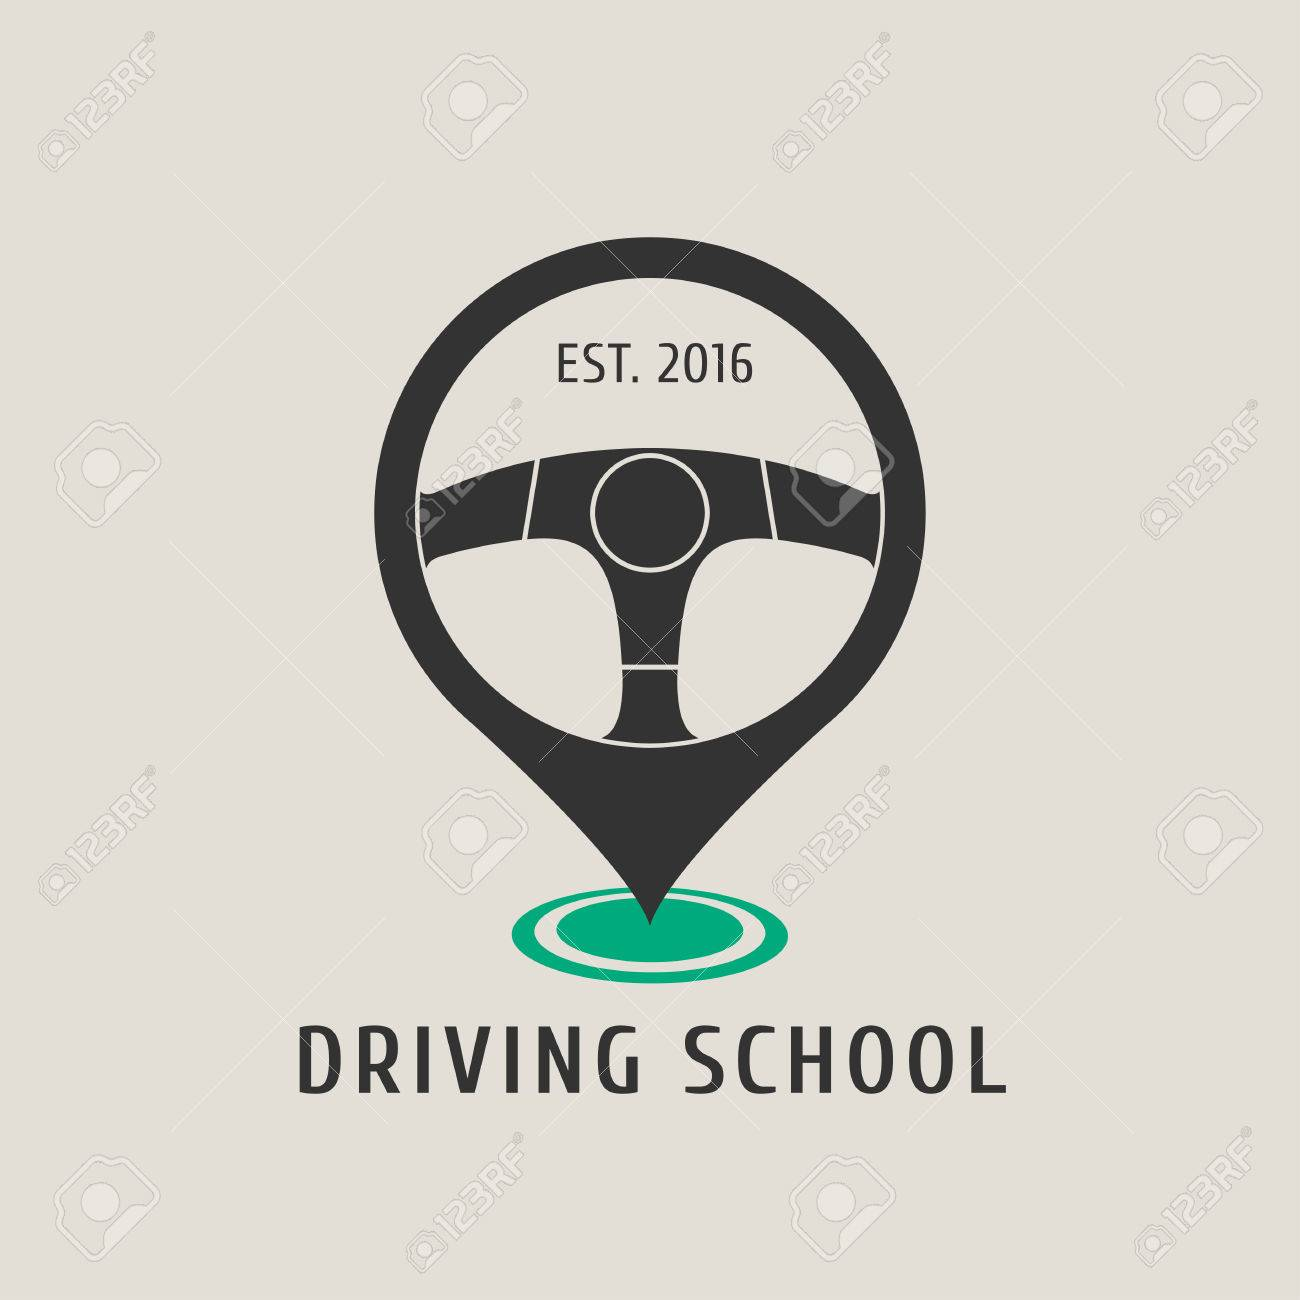 automobile driving school vector logo sign emblem steering royalty free cliparts vectors and stock illustration image 69002178 automobile driving school vector logo sign emblem steering